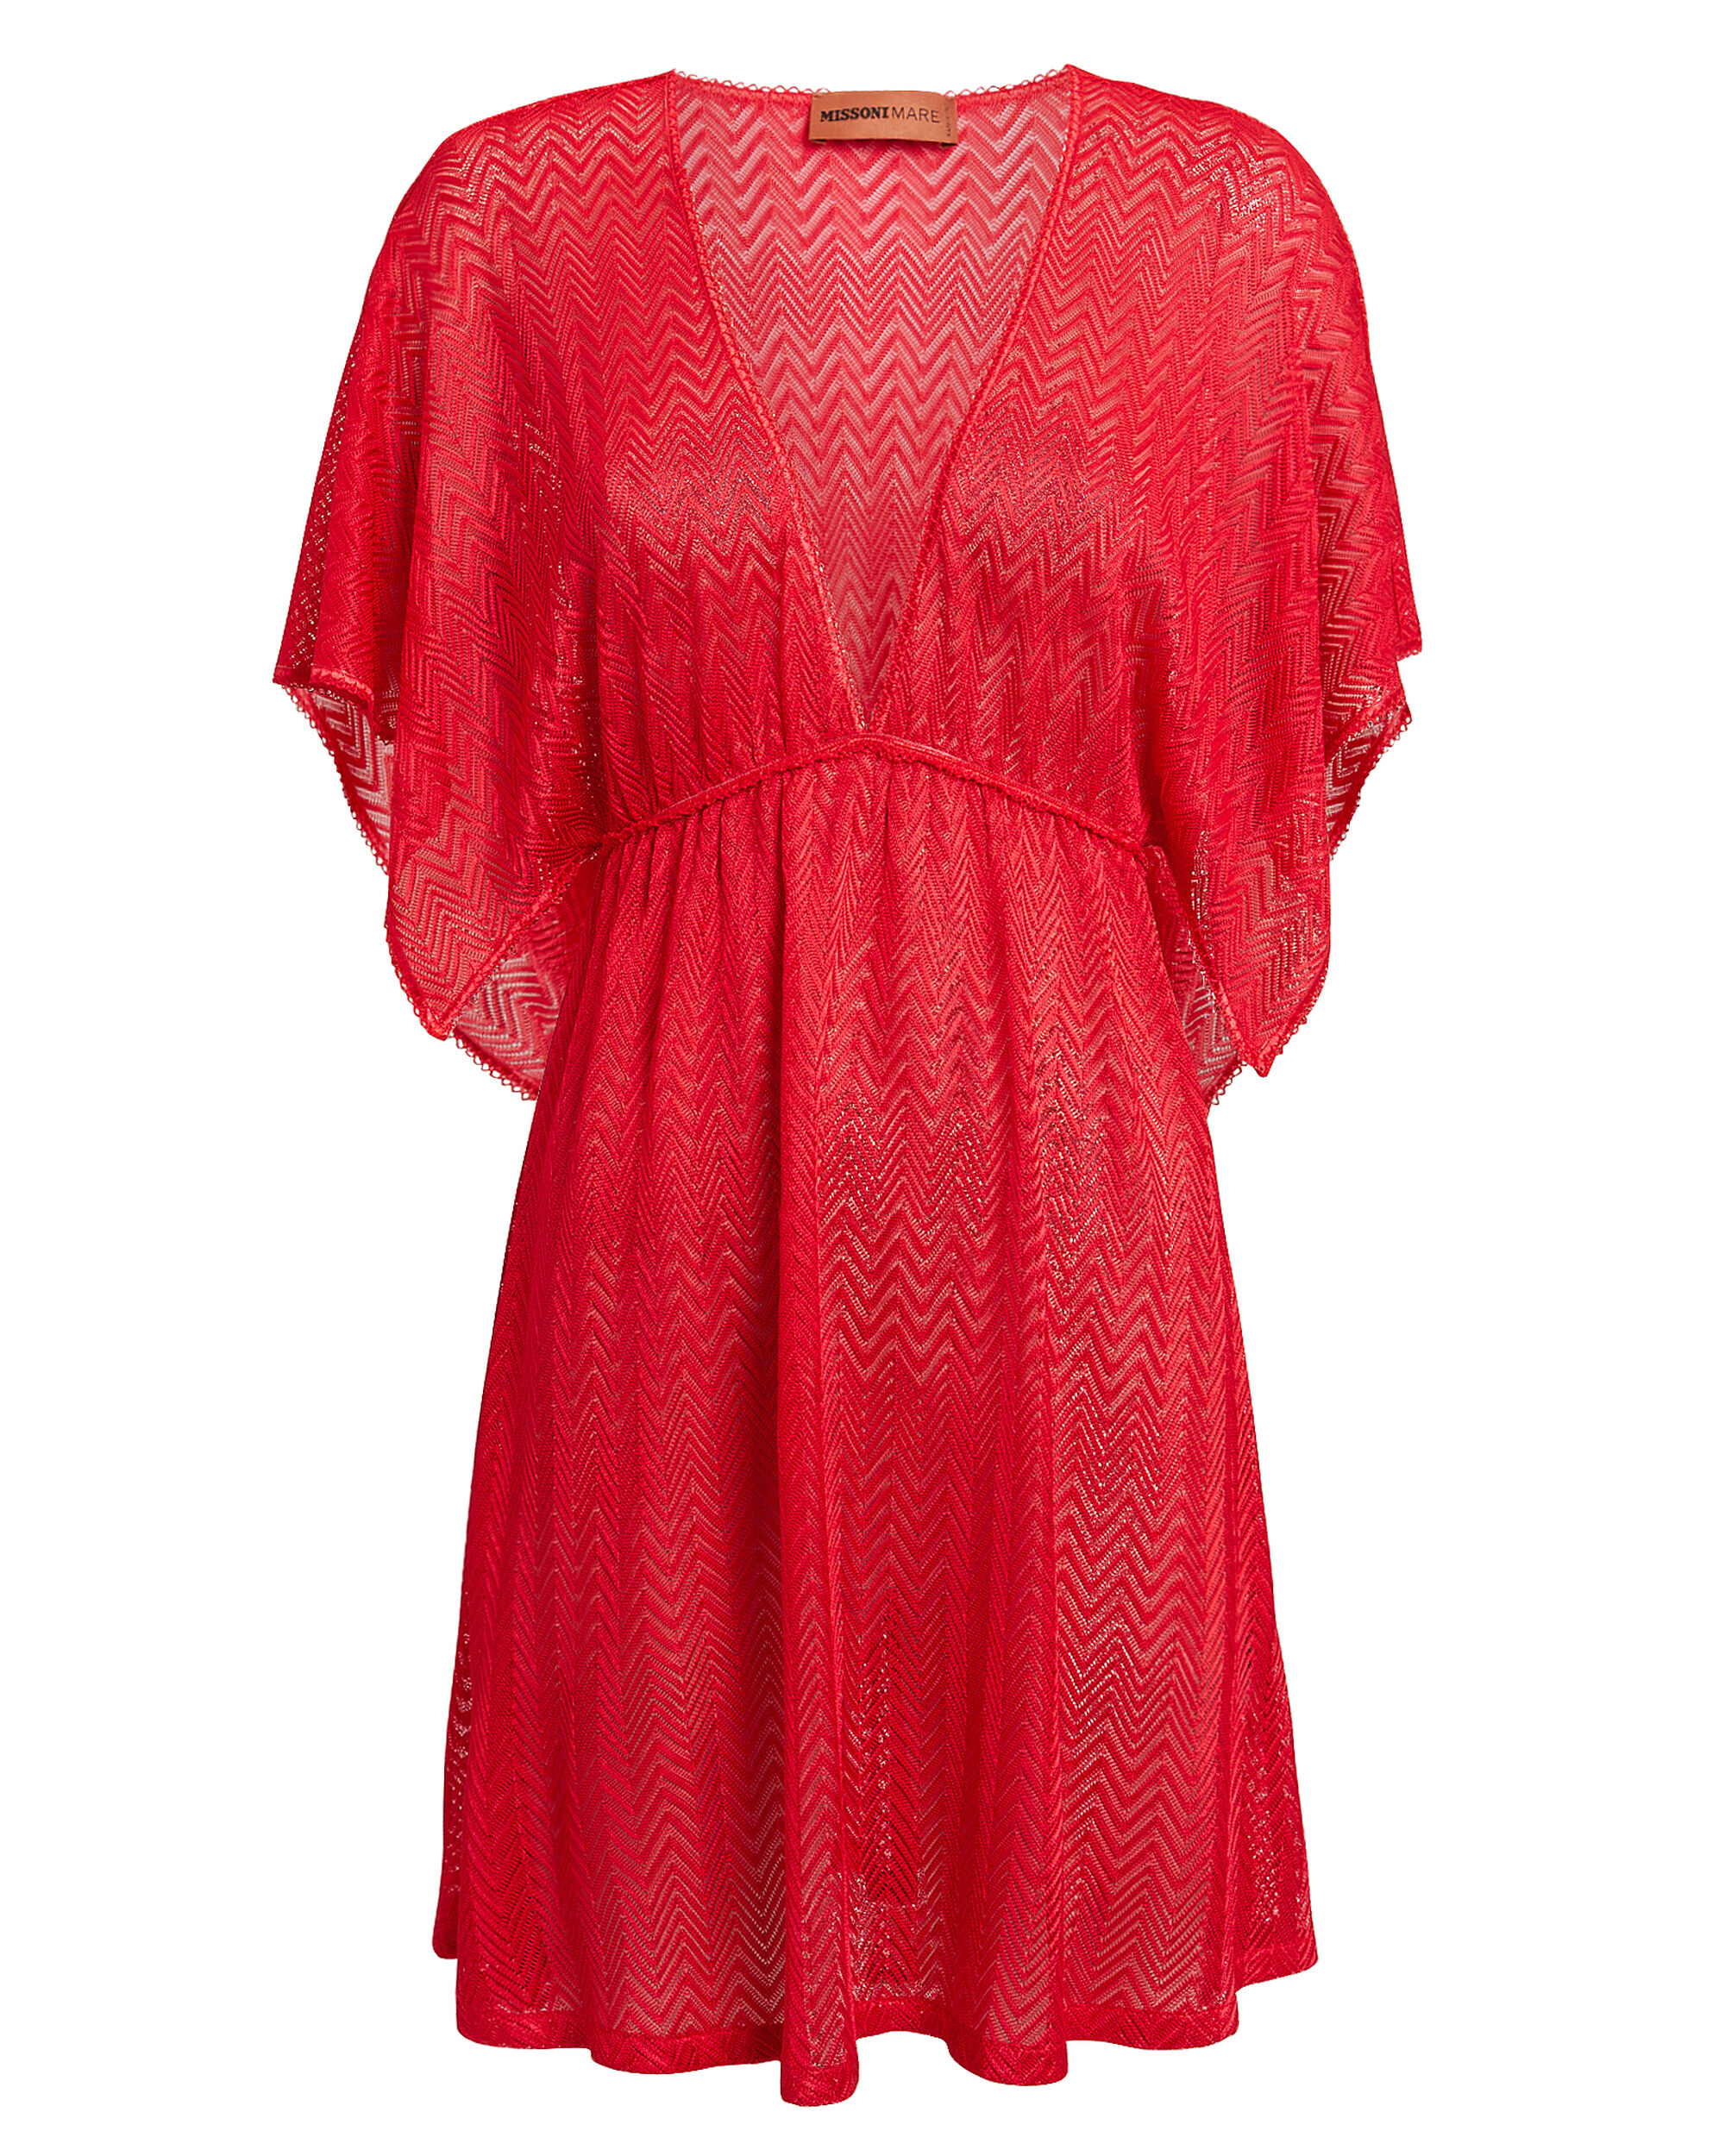 Coral Cover-Up Dress, CORAL, hi-res